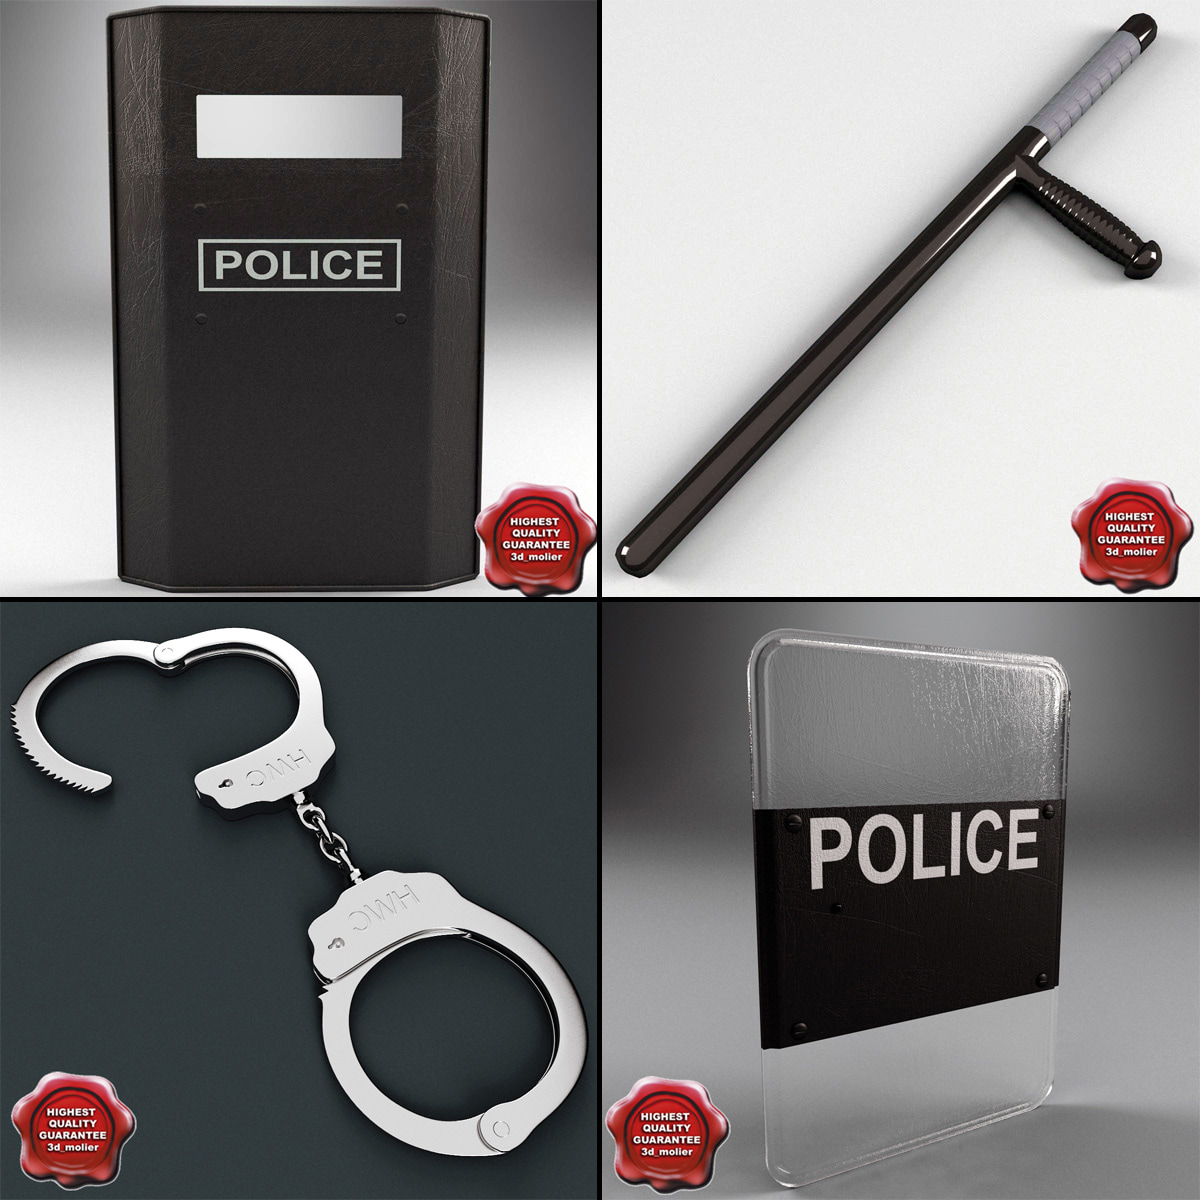 Police_Equipment_Collection_00.jpg